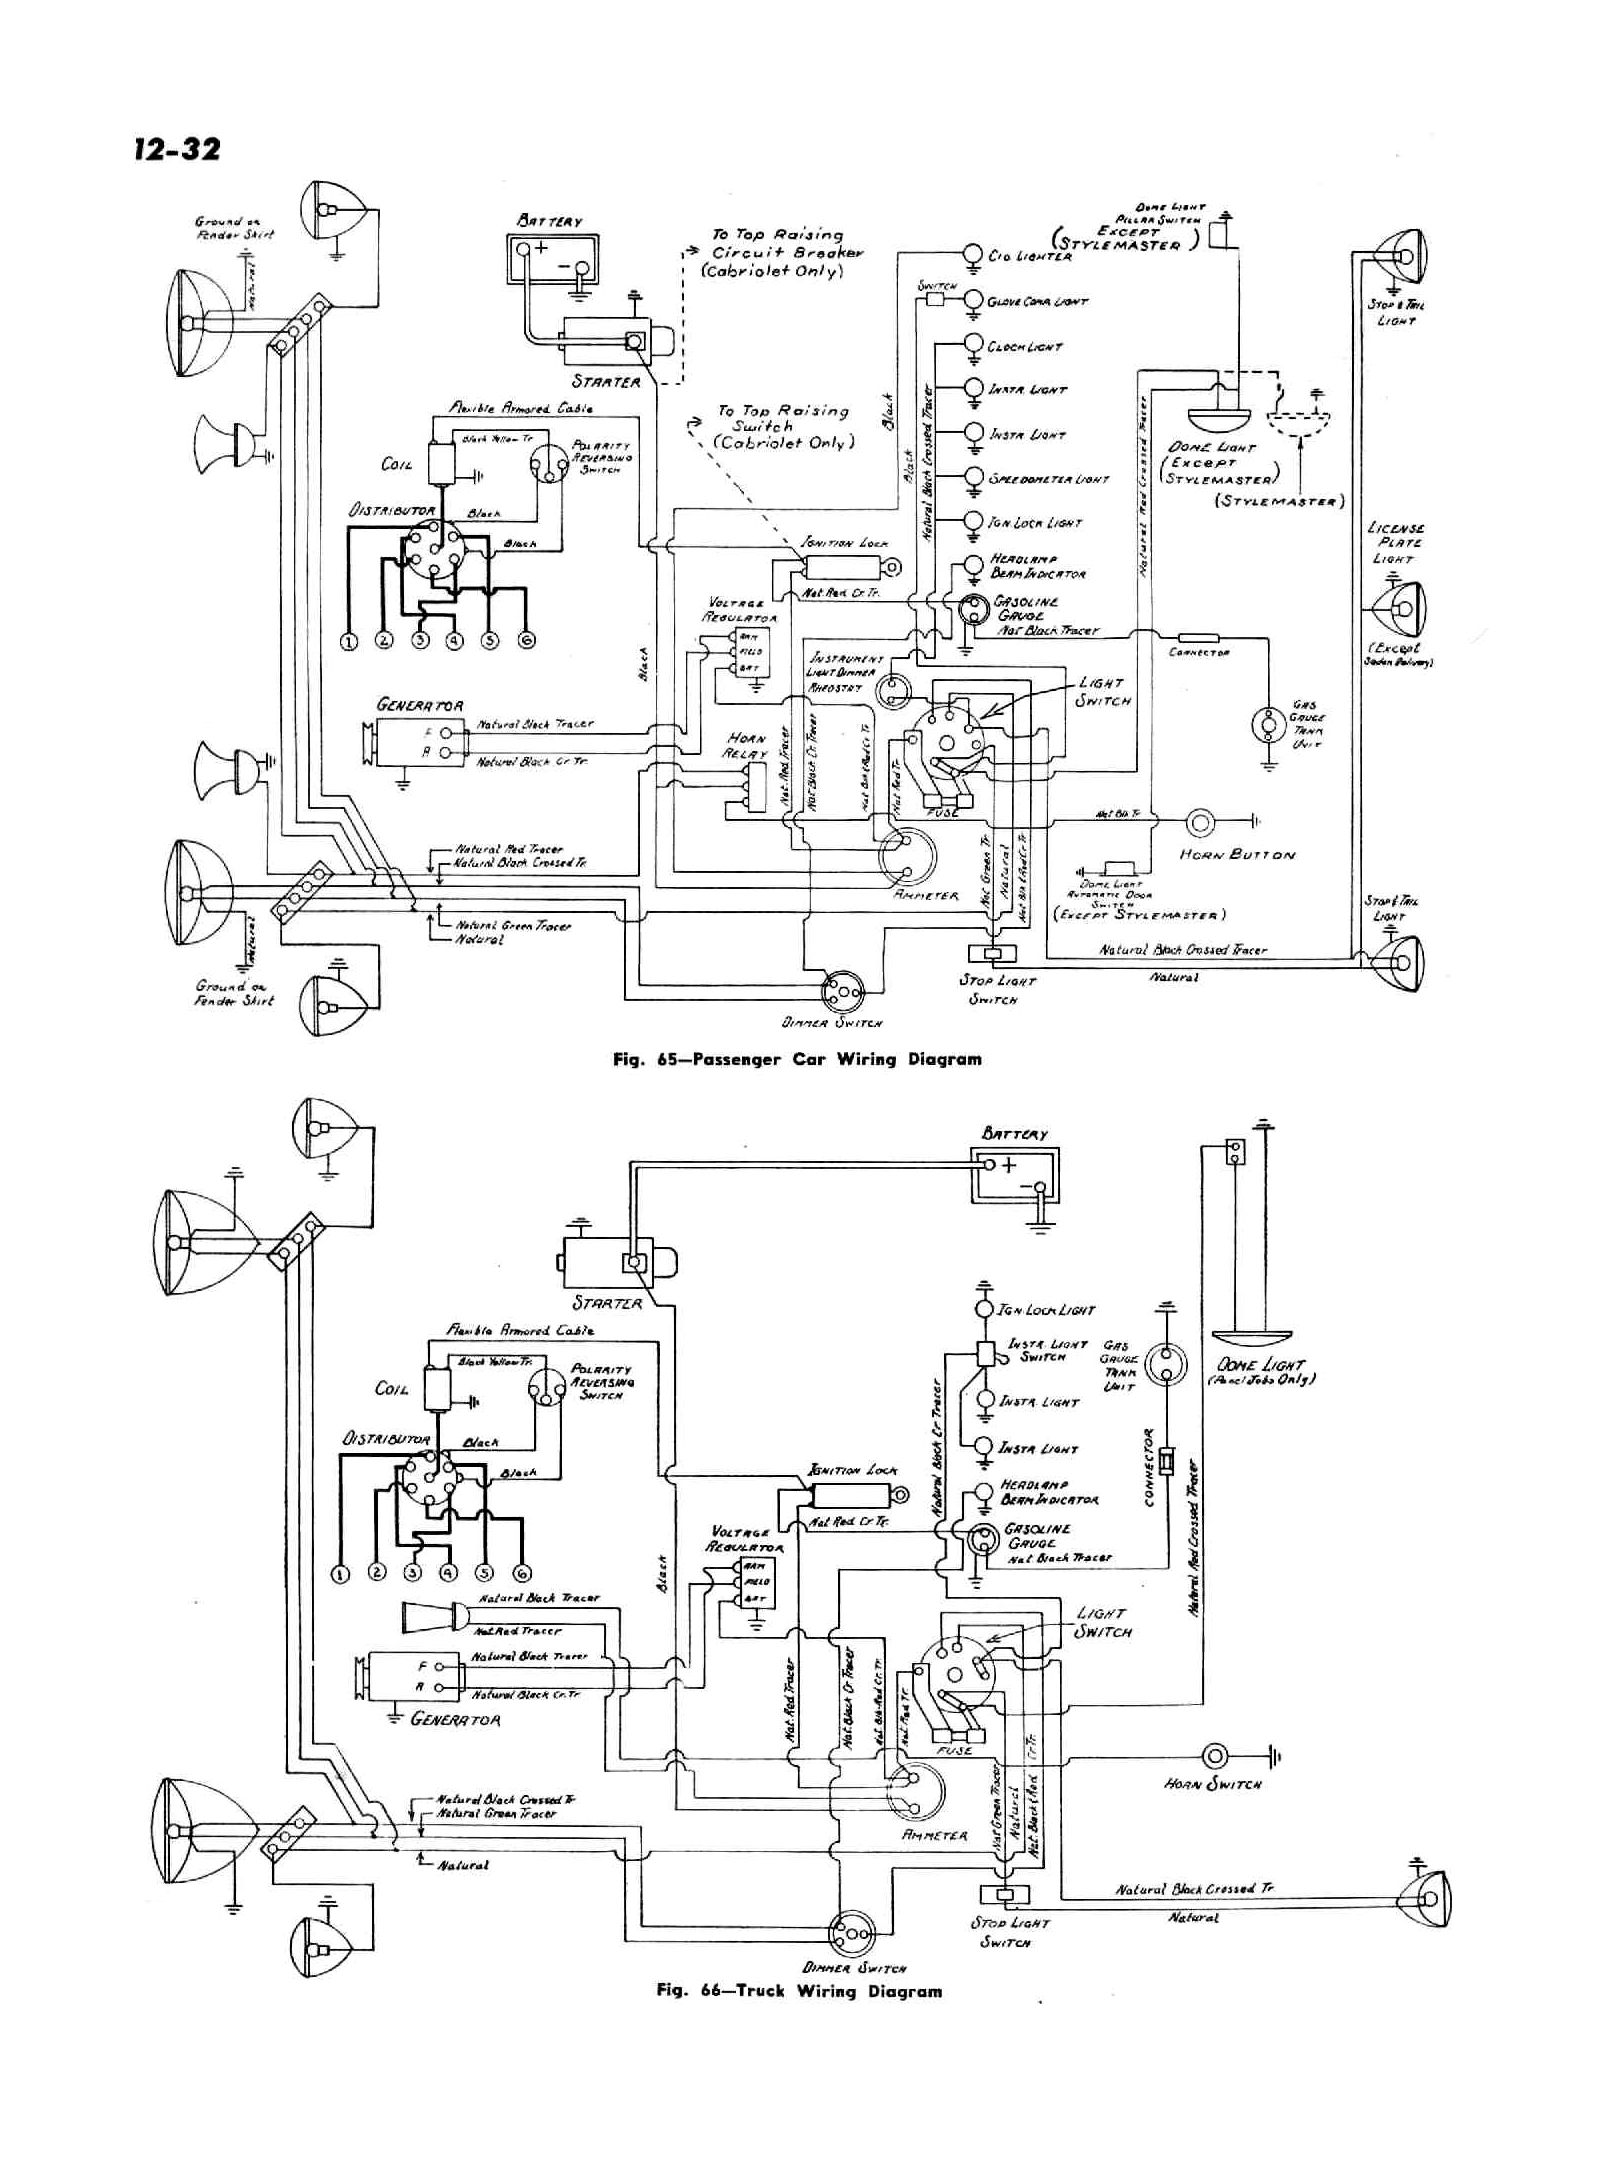 4247csm1232 chevy wiring diagrams 1946 chevy wiring harness instructions at creativeand.co